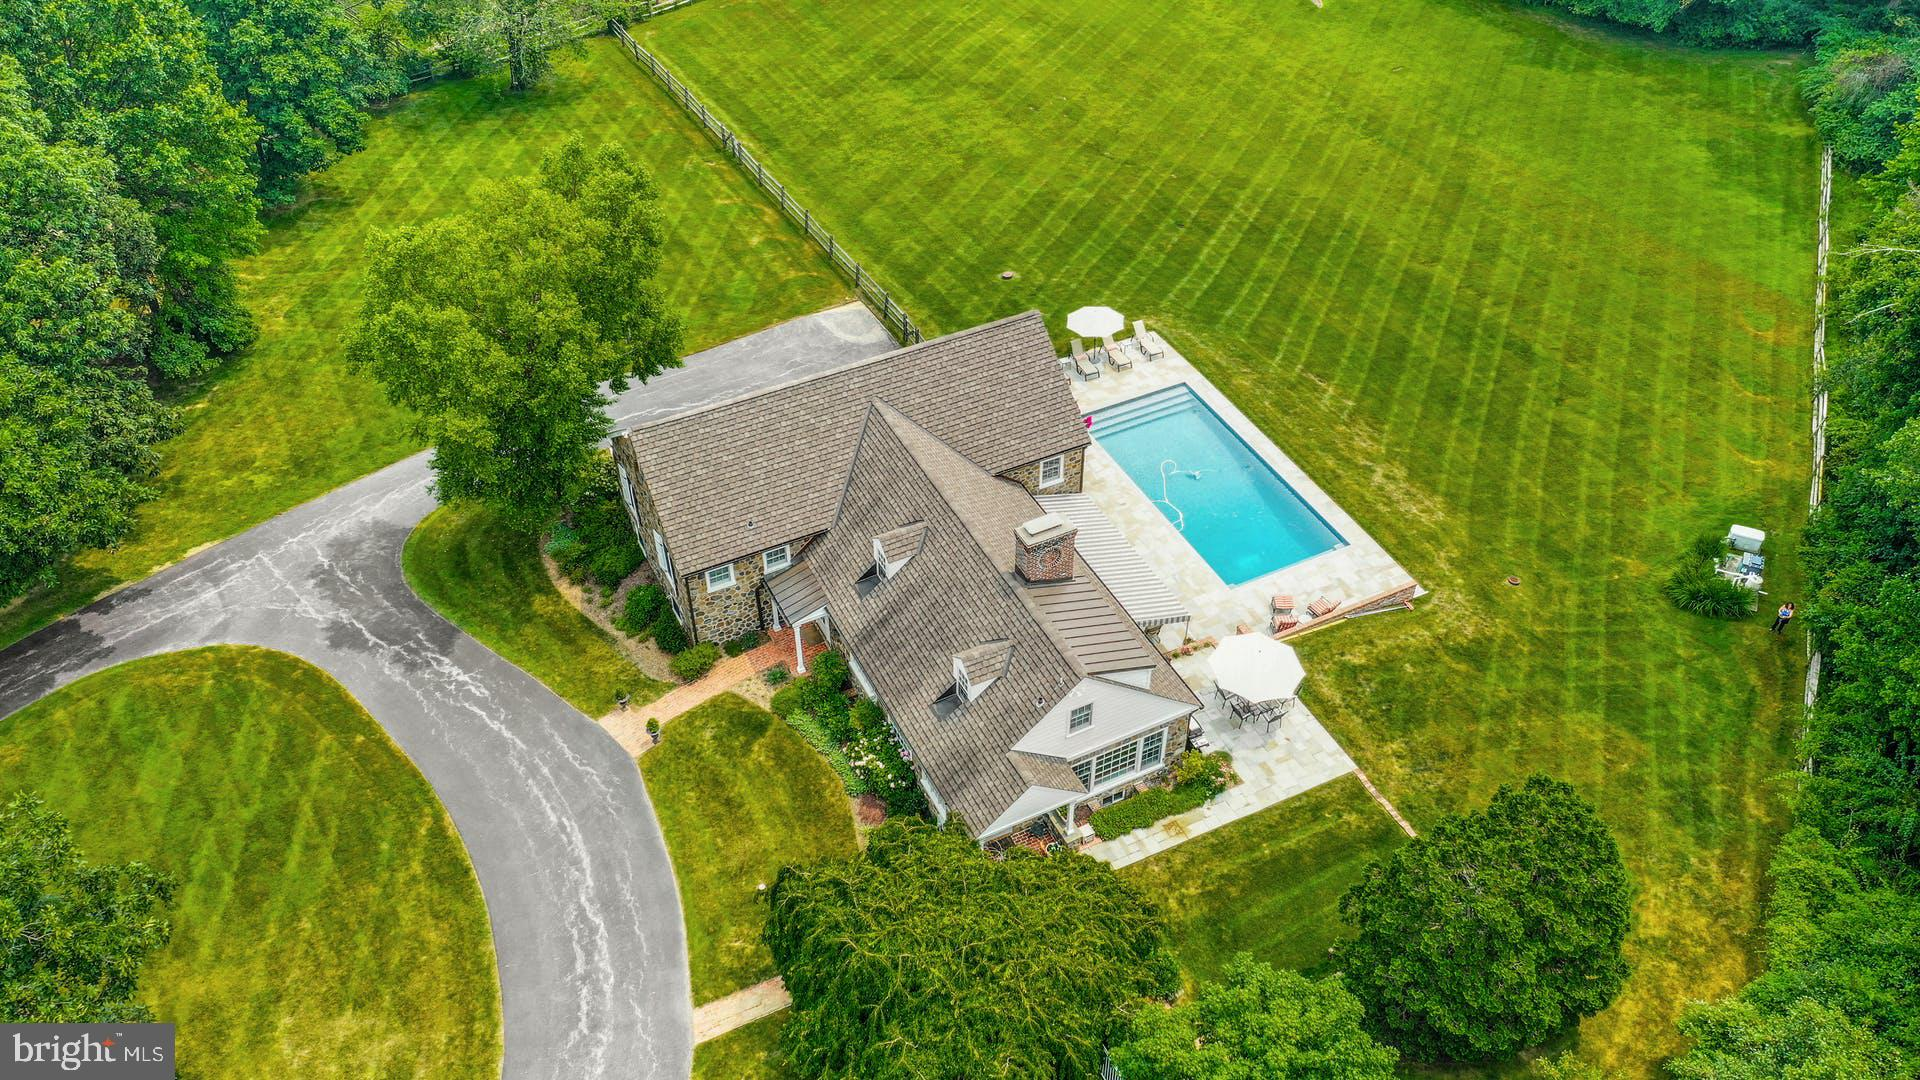 Located on sought after Greenbriar Lane, a quiet private cul de sac in Willistown Township. This house will not disappoint!! Drive in the majestic circular drive to this charming stone home where the covered portico welcomes you.  If this home wasn't originally built by Brognard Oakie, it certainly was inspired by his designs.  Walk into the brick foyer and step down into the huge living room with wood burning fireplace and beamed soaring ceilings. The French door opens to the beautiful flagstone, awning covered patio that leads to the beautiful pool, decking and grounds beyond.  The wonderful flow of this home continues to the light filled dining room whose Dutch door opens to its own patio and views beyond.  Circle back around to the incredibly efficient kitchen which runs along the front of the home.  The main bedroom suite is its own sanctuary with its own private office or den,   large walk in closet and gorgeous bath.  2 additional bedrooms, each with breath taking views and hall bath complete this floor.  The next level houses a large 4th bedroom and luxurious bath, could be an additional main bedroom or a bonus/ playroom or guest suite.  The lower level features a family room, full bath a good size laundry room plus access to the attached 2 car garage and basement with plenty of storage.  This magnificent property has been professionally landscaped and maintained,  4 Greenbriar lane is extremely private yet convenient to all the Main Line has to offer and provides easy access to the Paoli Amtrak and Septa station, Radnor Hunt, Waynesborough  Country Club, premier shopping  and schools.. A One Year HSA Home Warranty will be given to the Buyer at Closing....